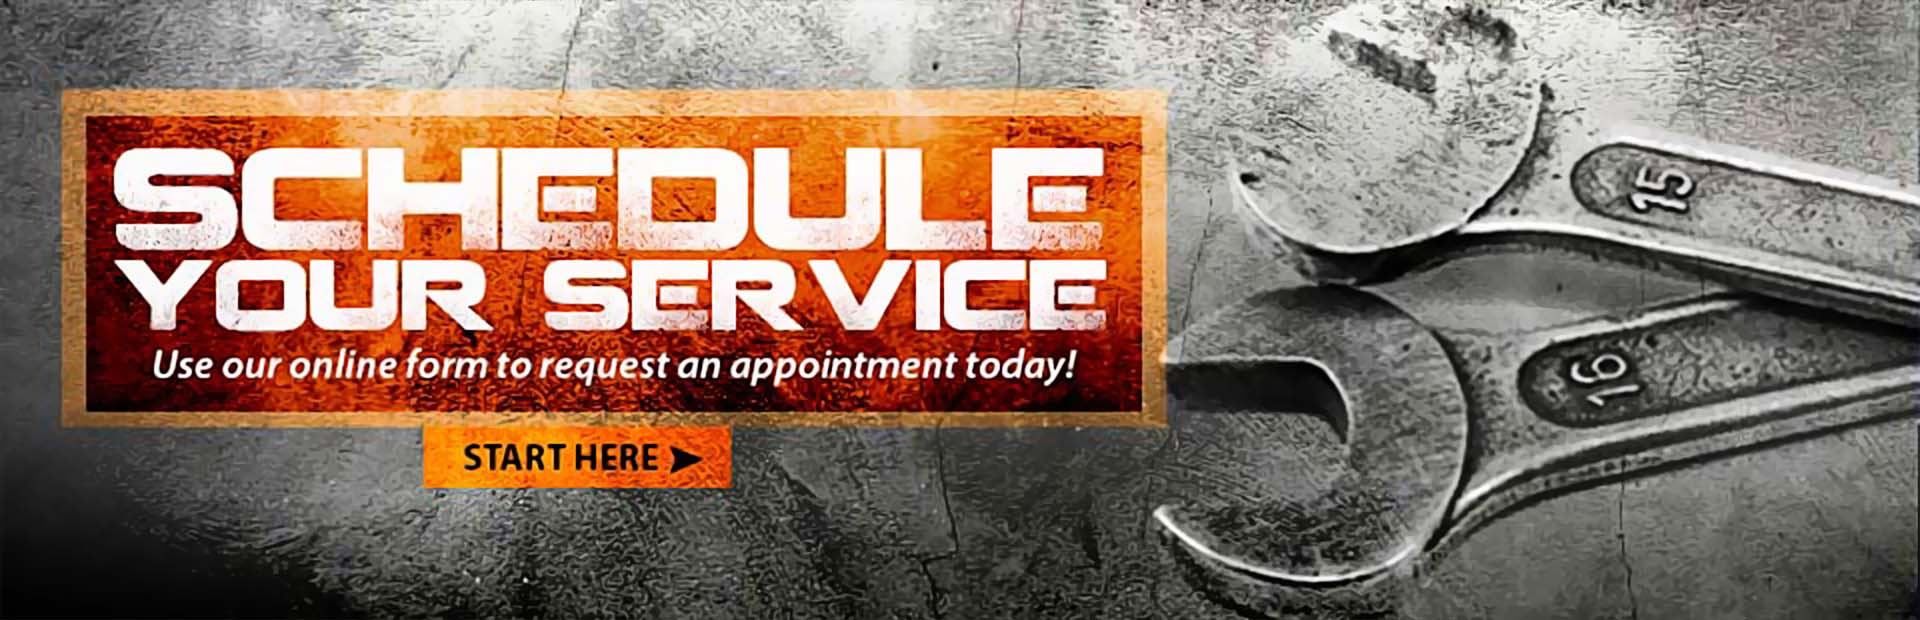 hight resolution of schedule your service